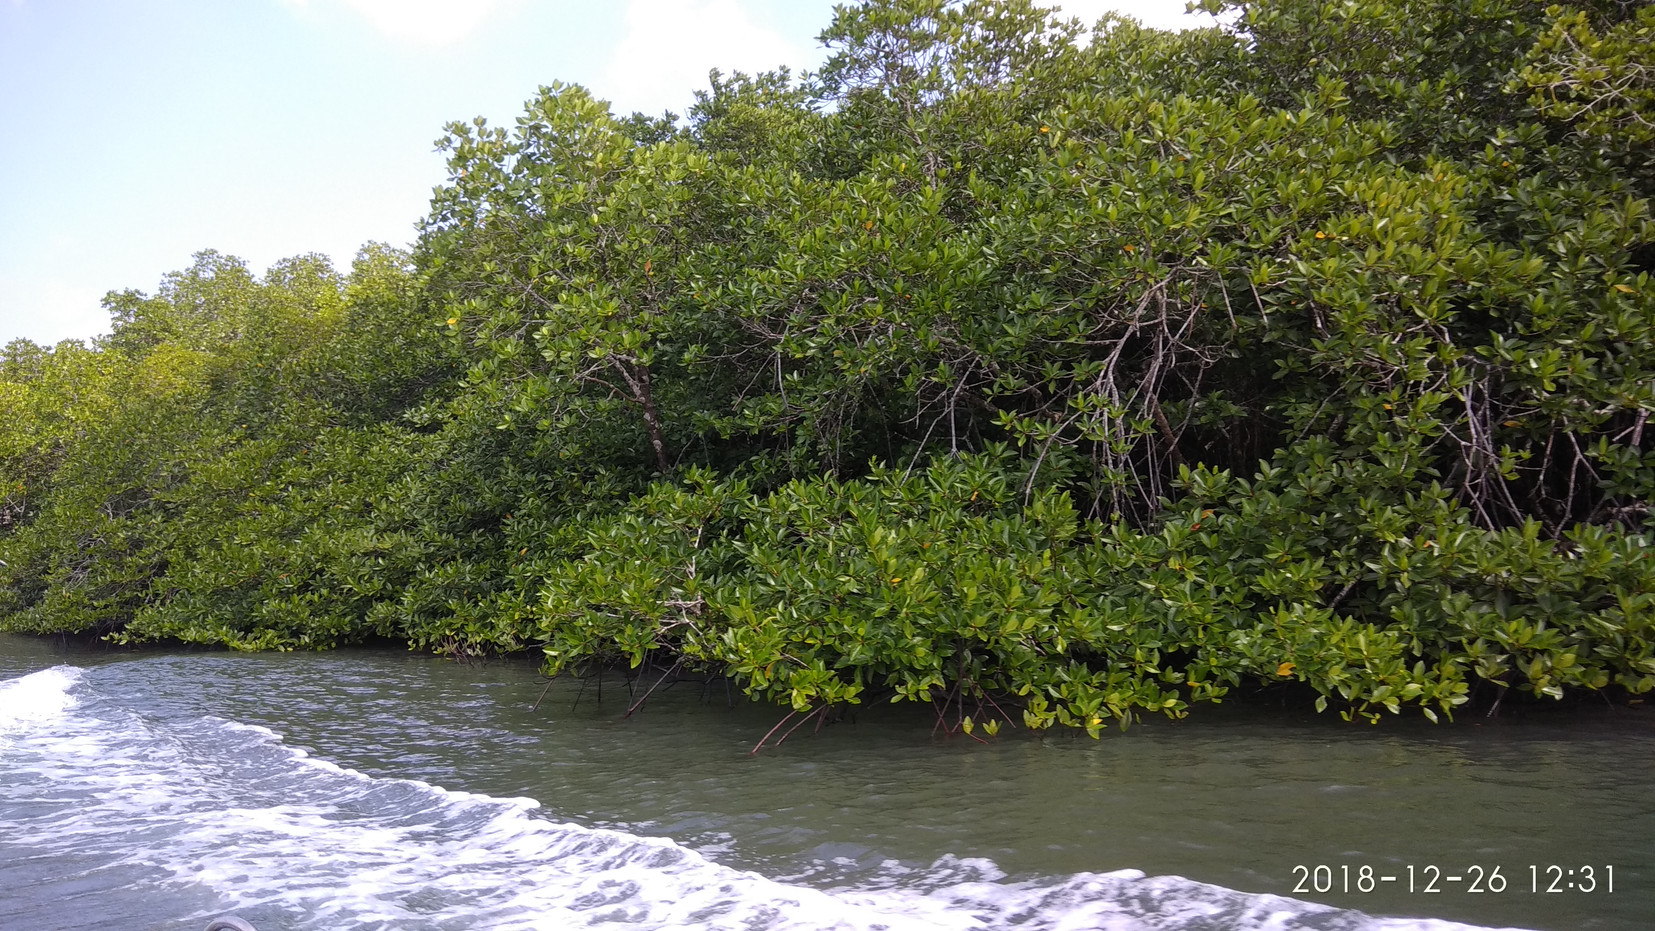 WAY LIME STONE CAVE MANGROVE EXCURSION